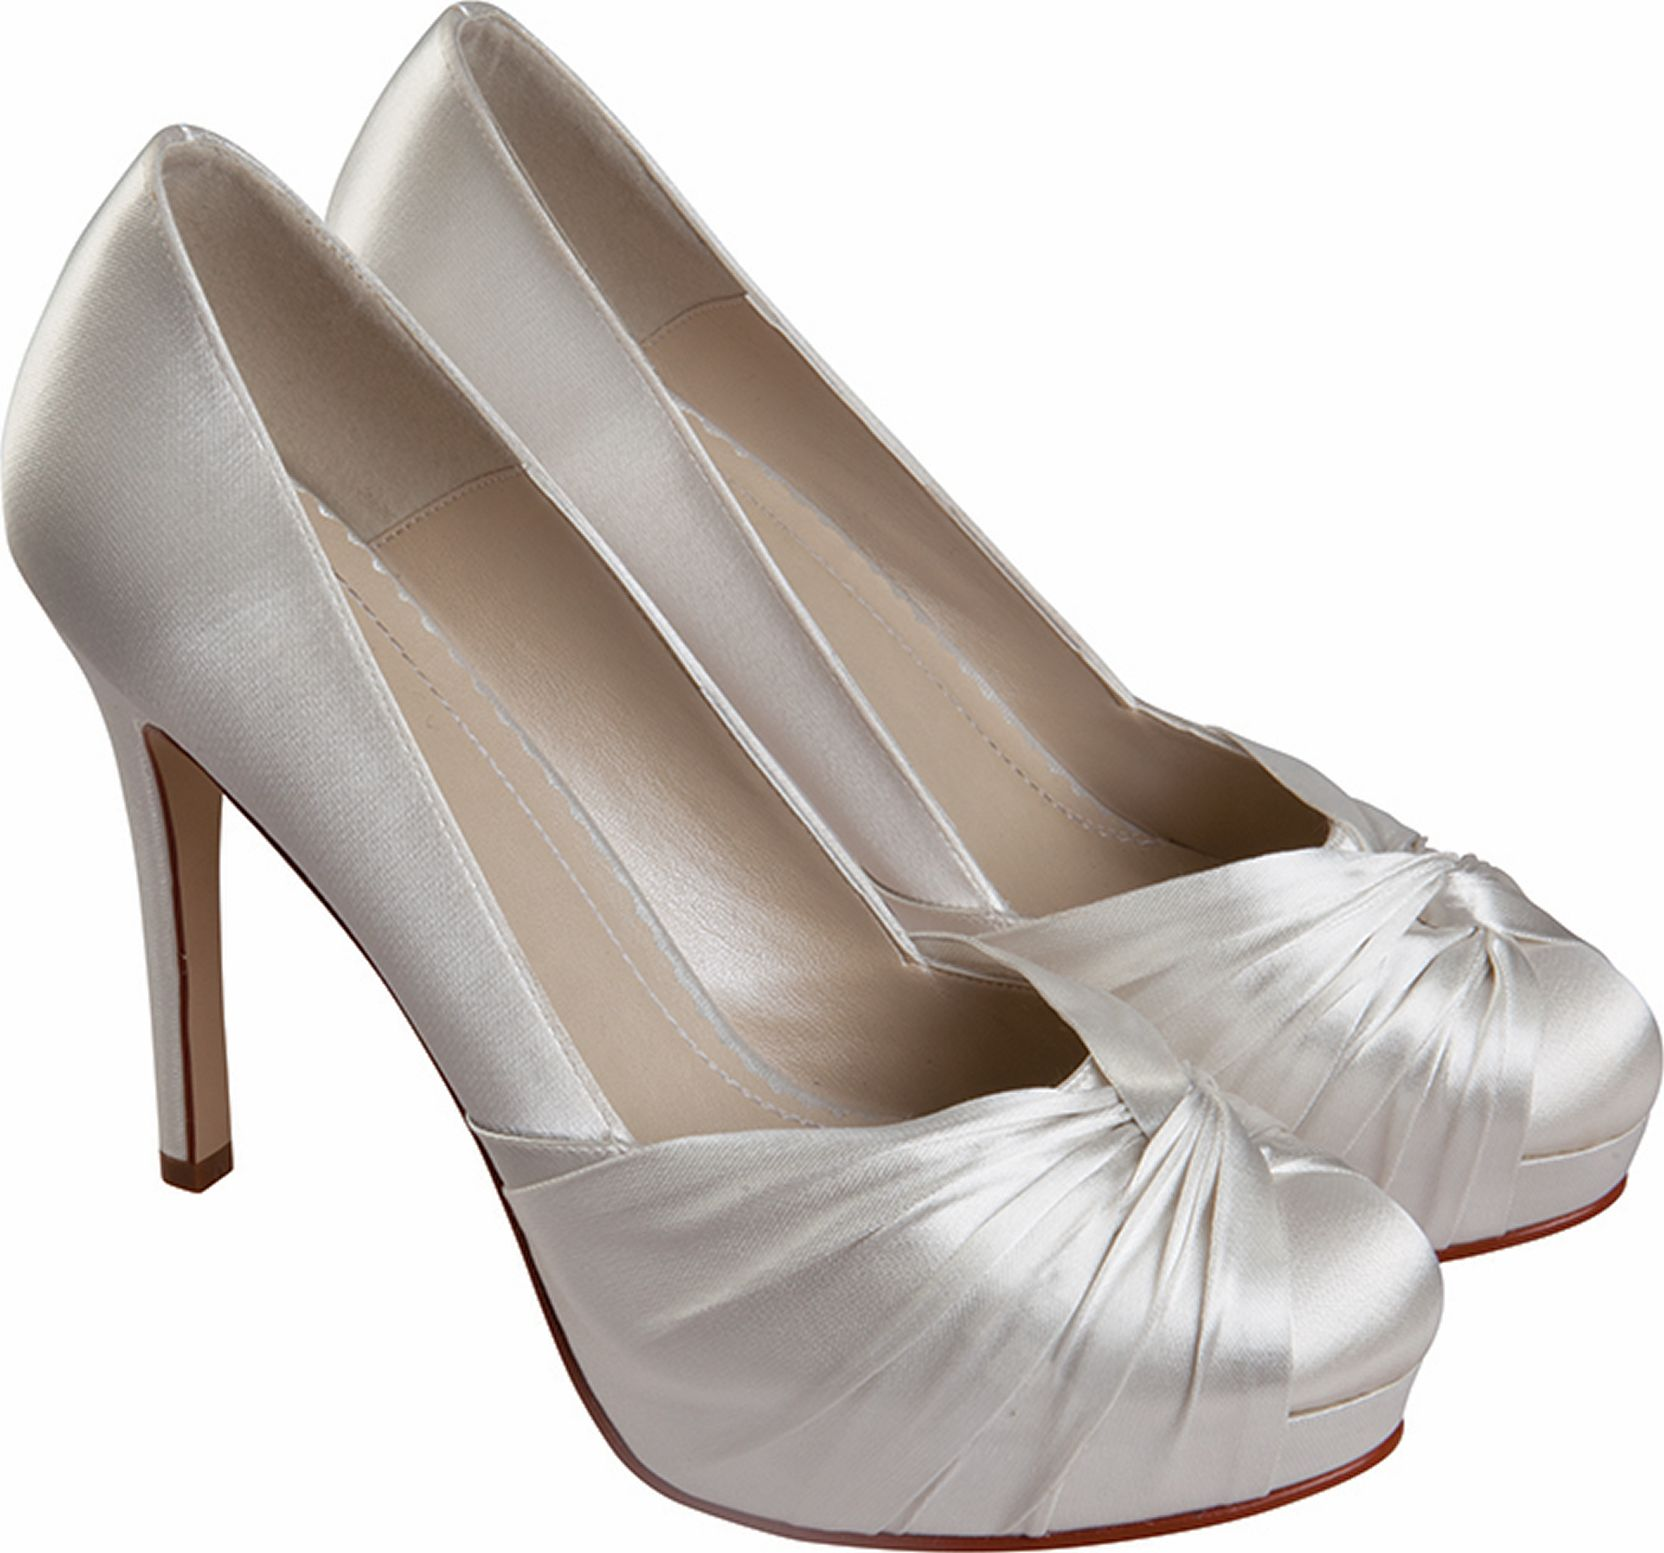 Simone From Rainbow Club Dyeable Wedding Shoes Bride Shoes Beautiful Shoes